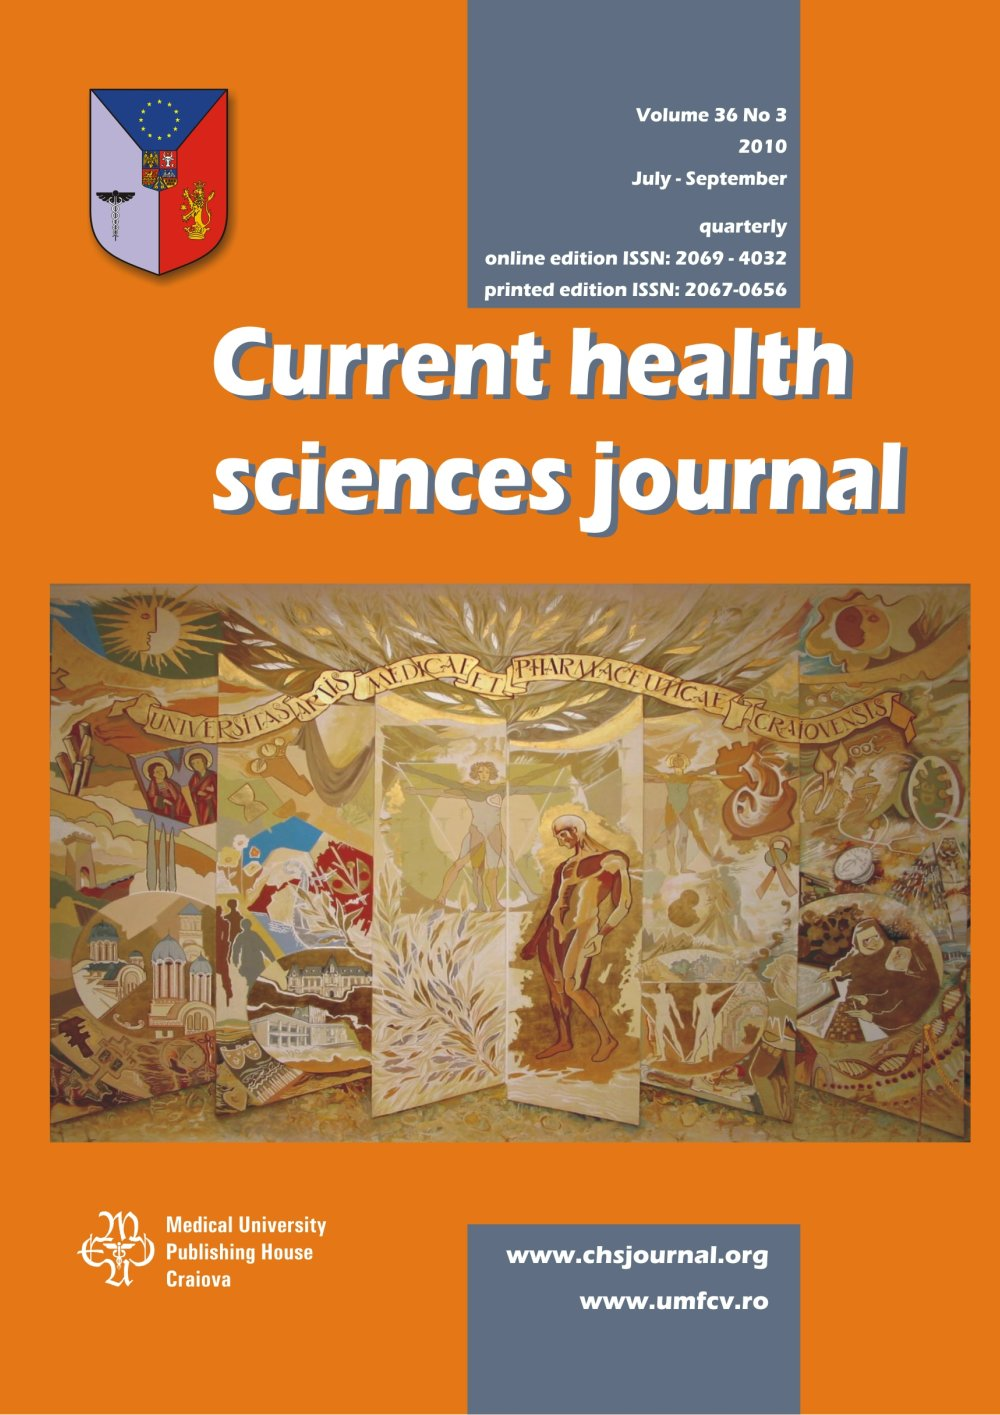 Current Health Sciences Journal, vol. 36 no. 3, 2010